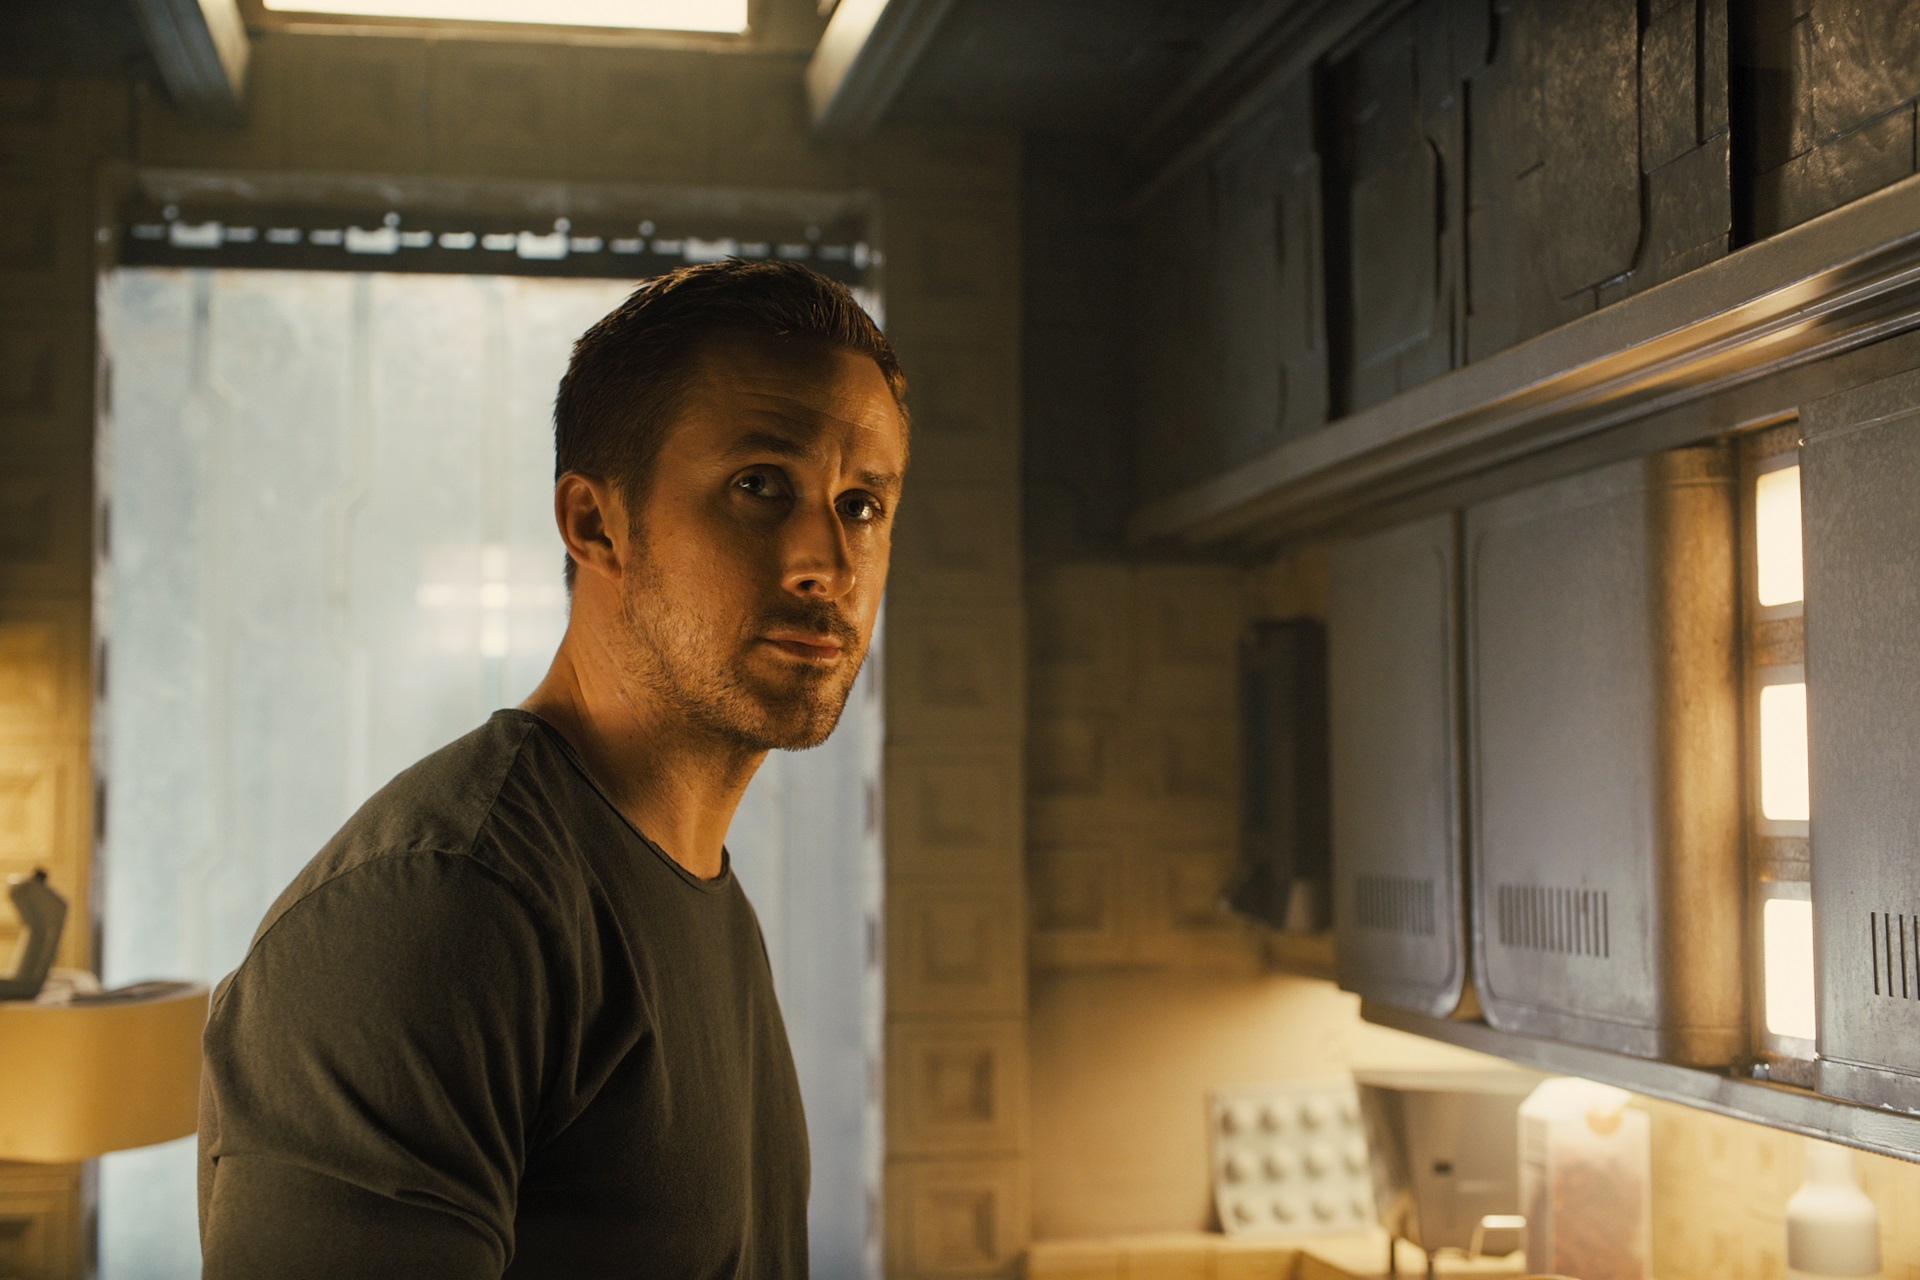 K (Ryan Gosling) in Denis Villeneuve's Blade Runner 2049